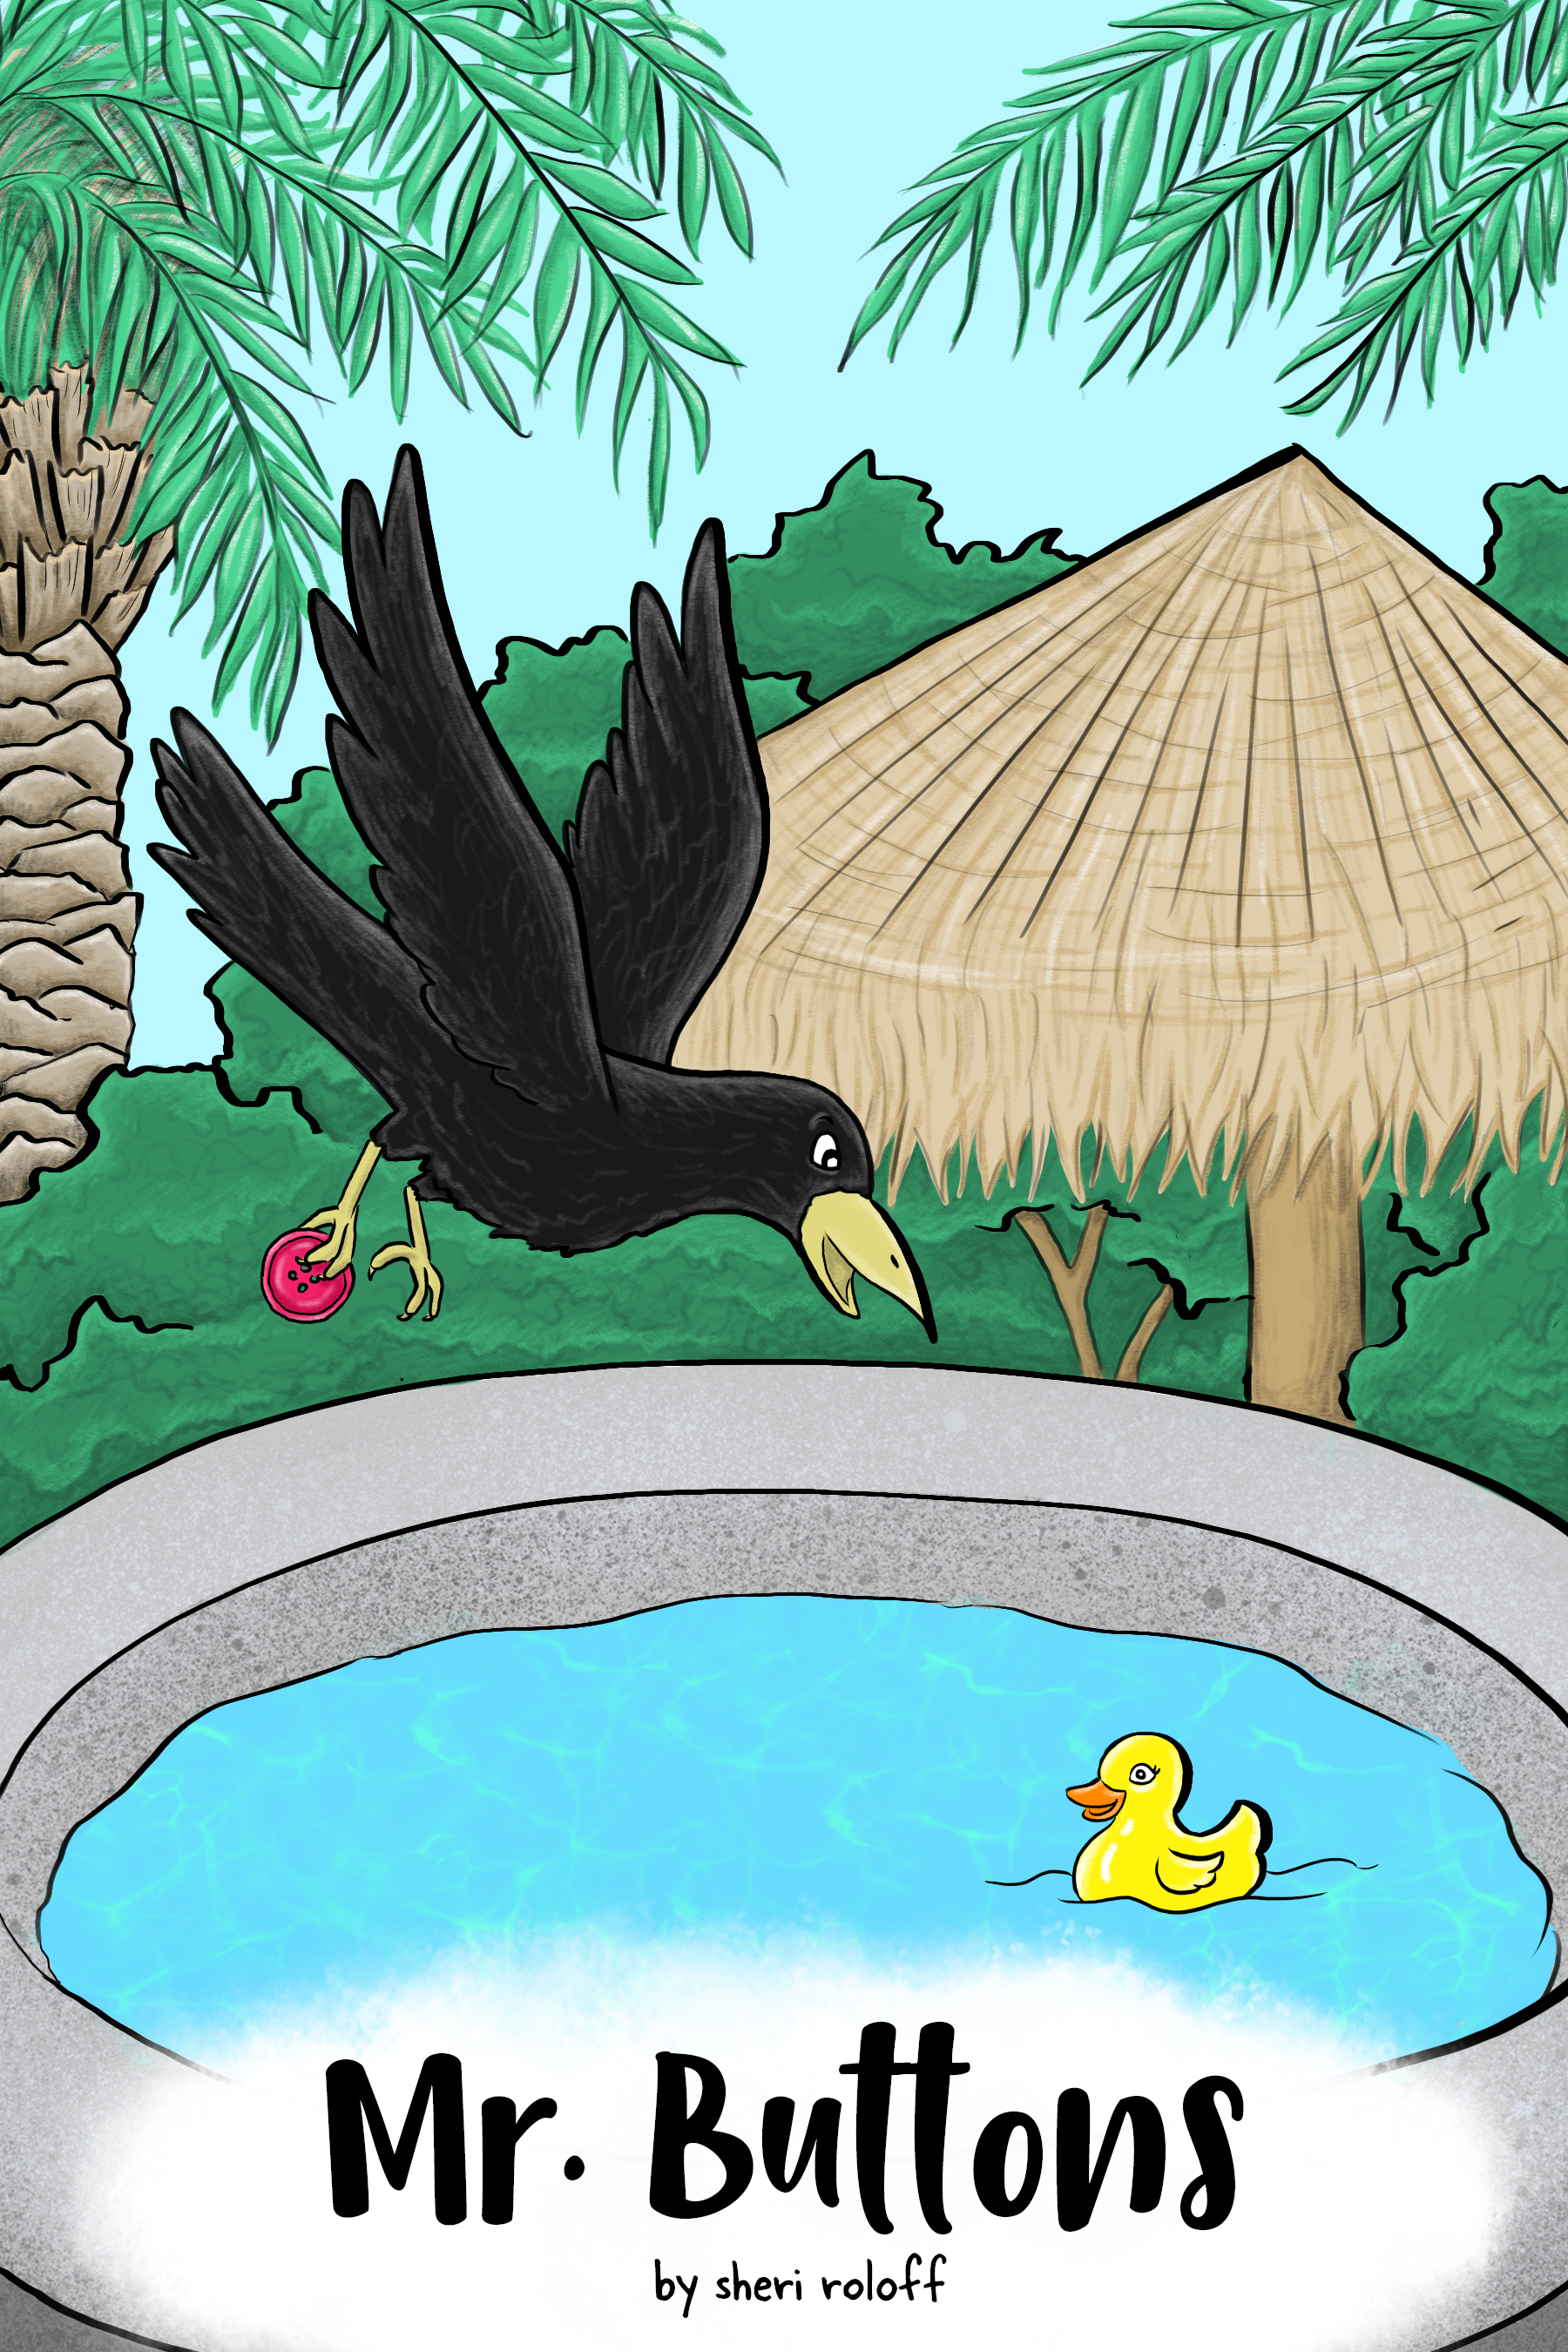 Mr. Buttons - When a smarmy crow falls in love with a duck-shaped hot tub chlorinator, things don't go as planned.